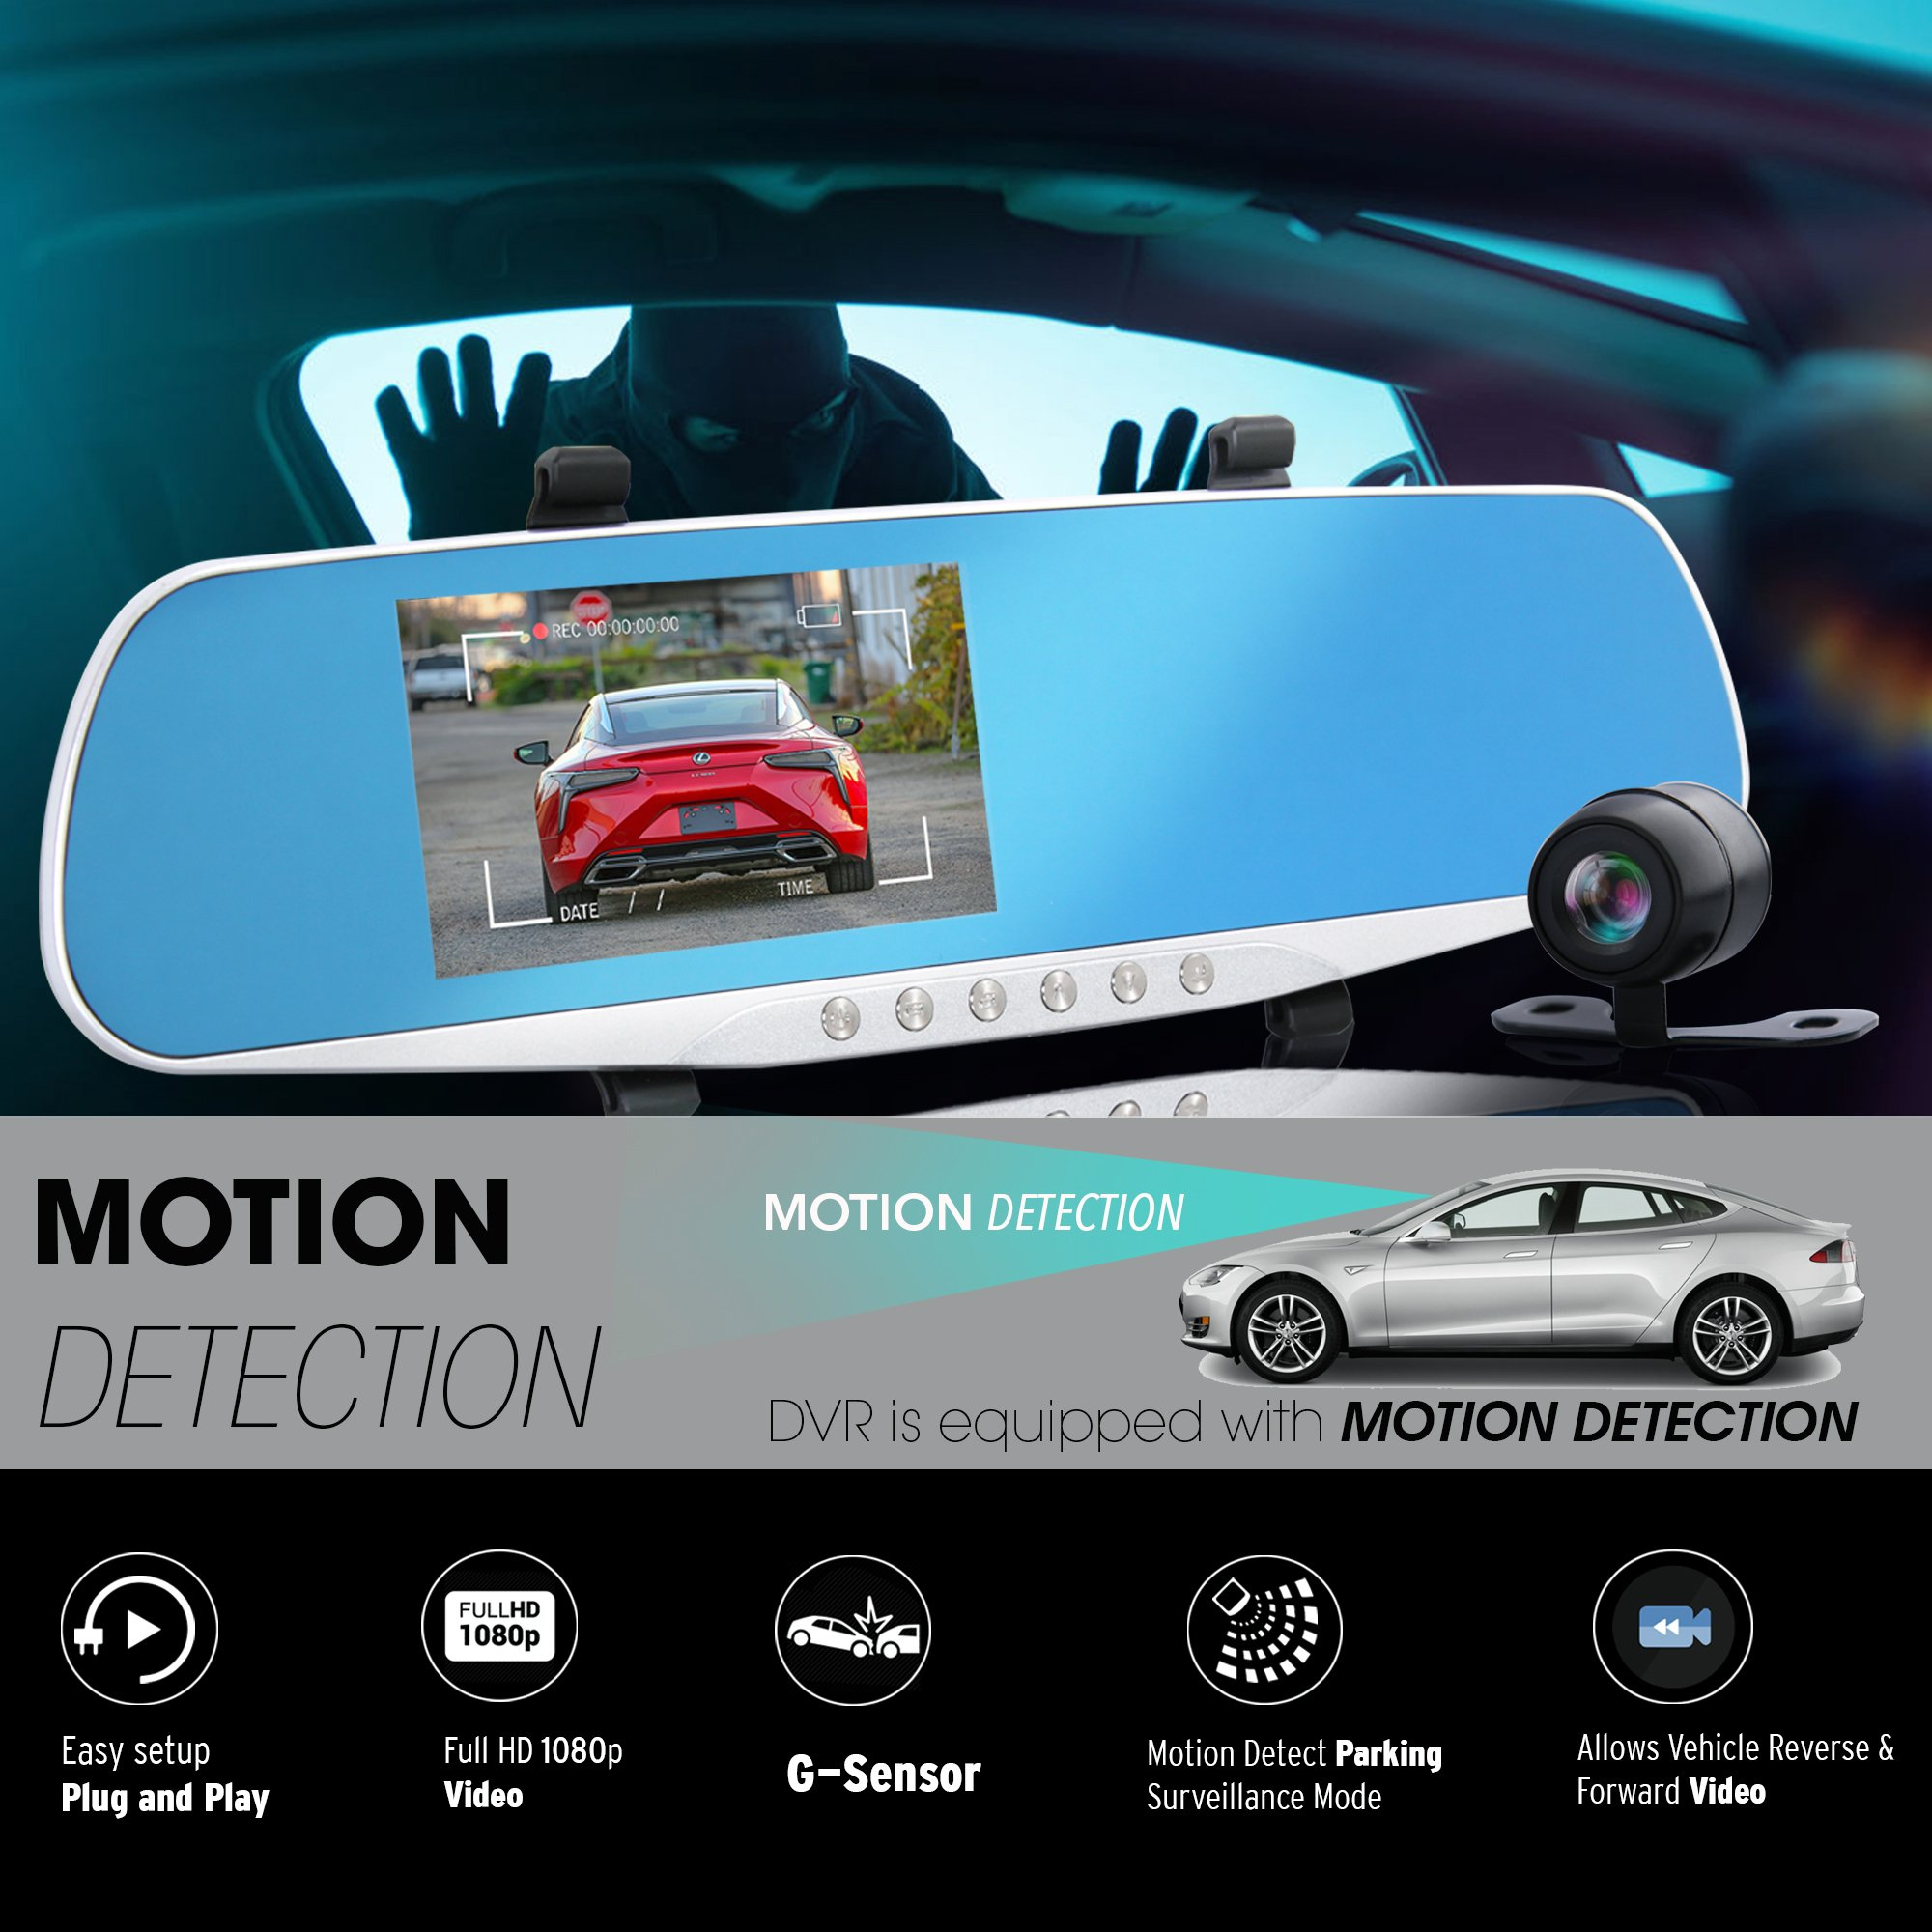 """Dash Cam Rearview Mirror Monitor - 4.3"""" DVR Rear View Dual Camera Video Recording System in Full HD 1080p w/Built in G-Sensor Motion Detect Parking Control Loop Record Support - Pyle PLCMDVR46 by Pyle (Image #7)"""